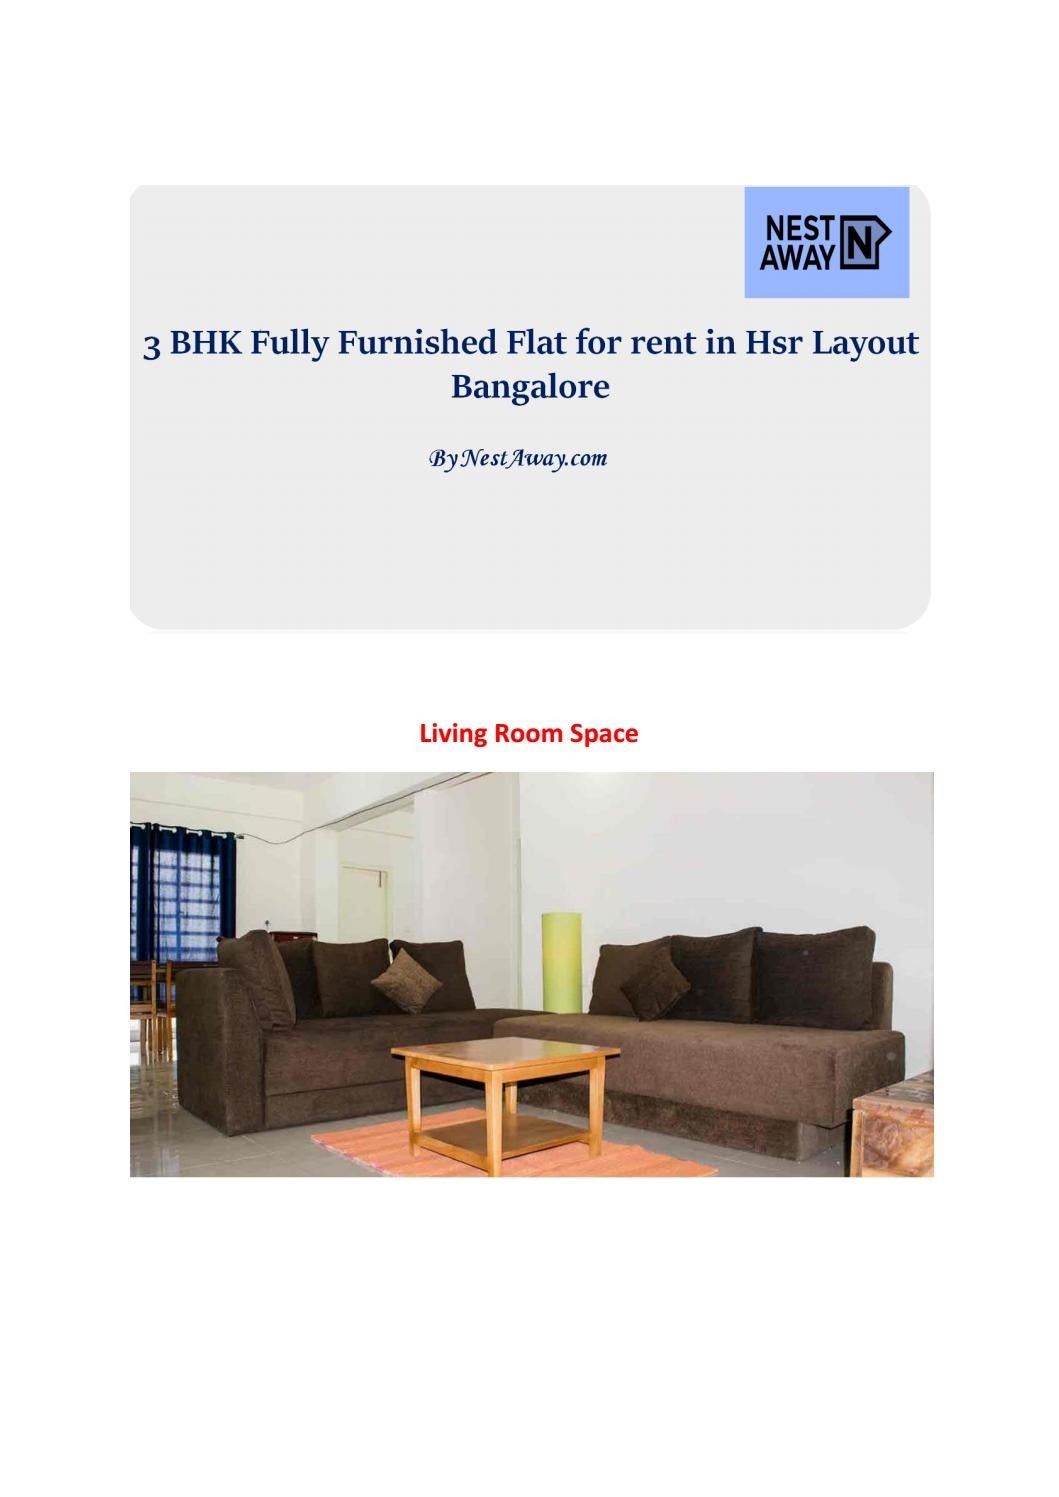 3 Bhk Fully Furnished Flat For Rent In Hsr Layout Bangalore By Nestaway Issuu